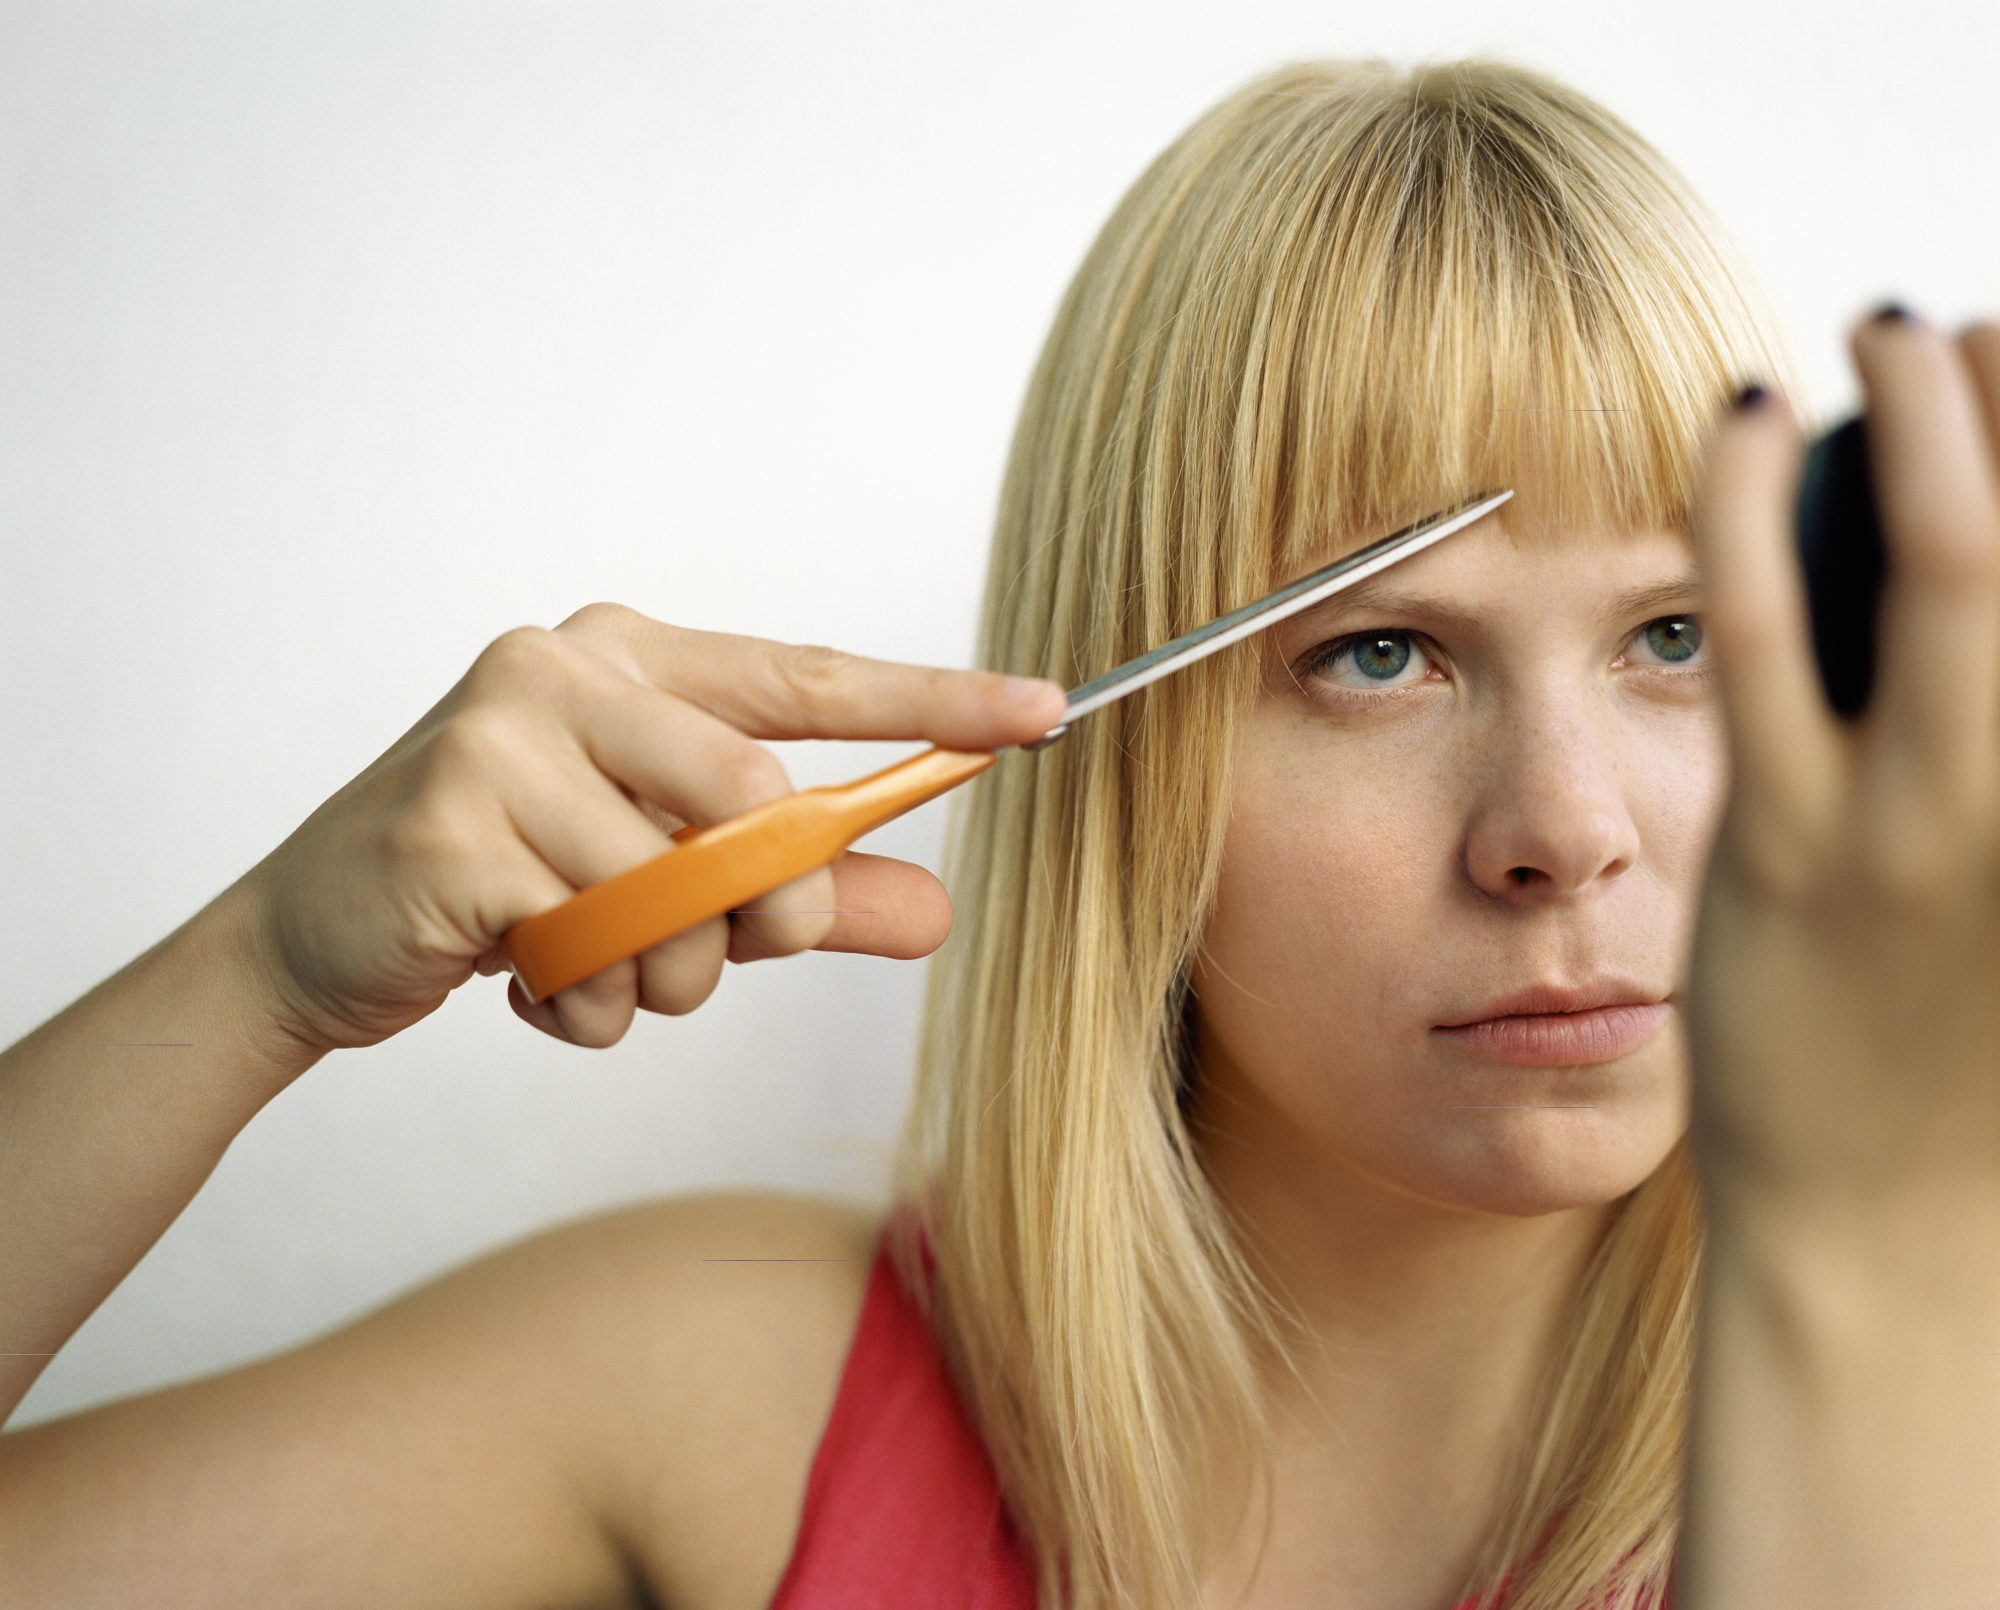 Image of a woman cutting her own bangs